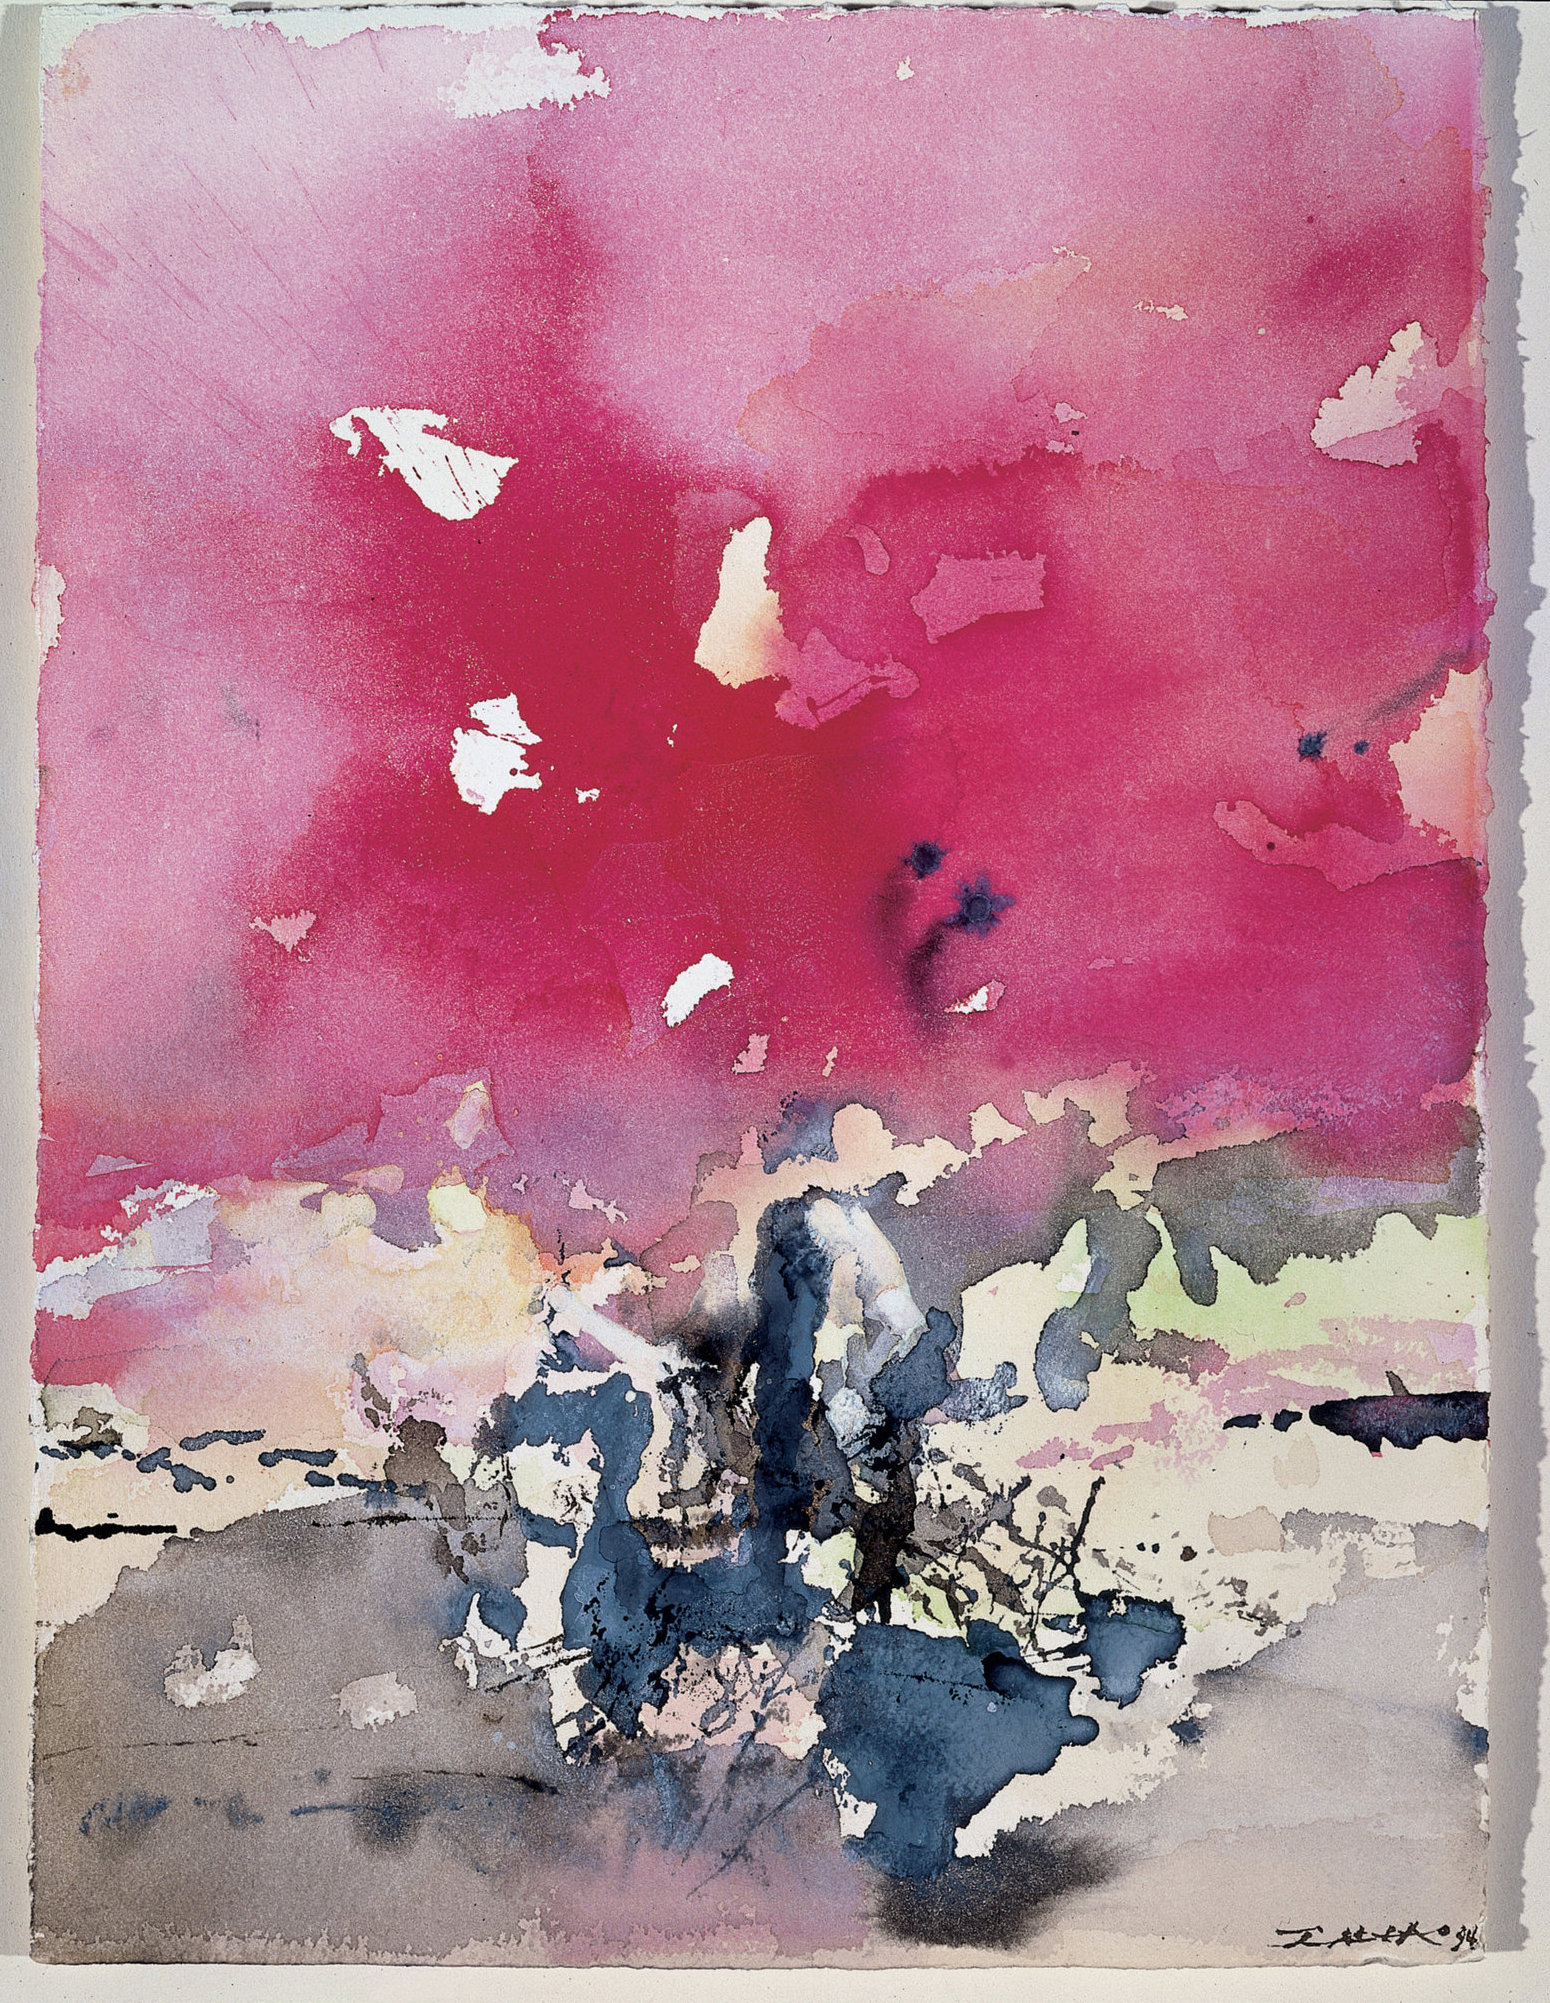 Zao Wou-Ki, Sans titre (Untitled), 1994, watercolor on paper, 17 × 12 inches (Private collection, Taiwan © Zao Wou-Ki/ProLitteris, Zurich. Rights Reserved)